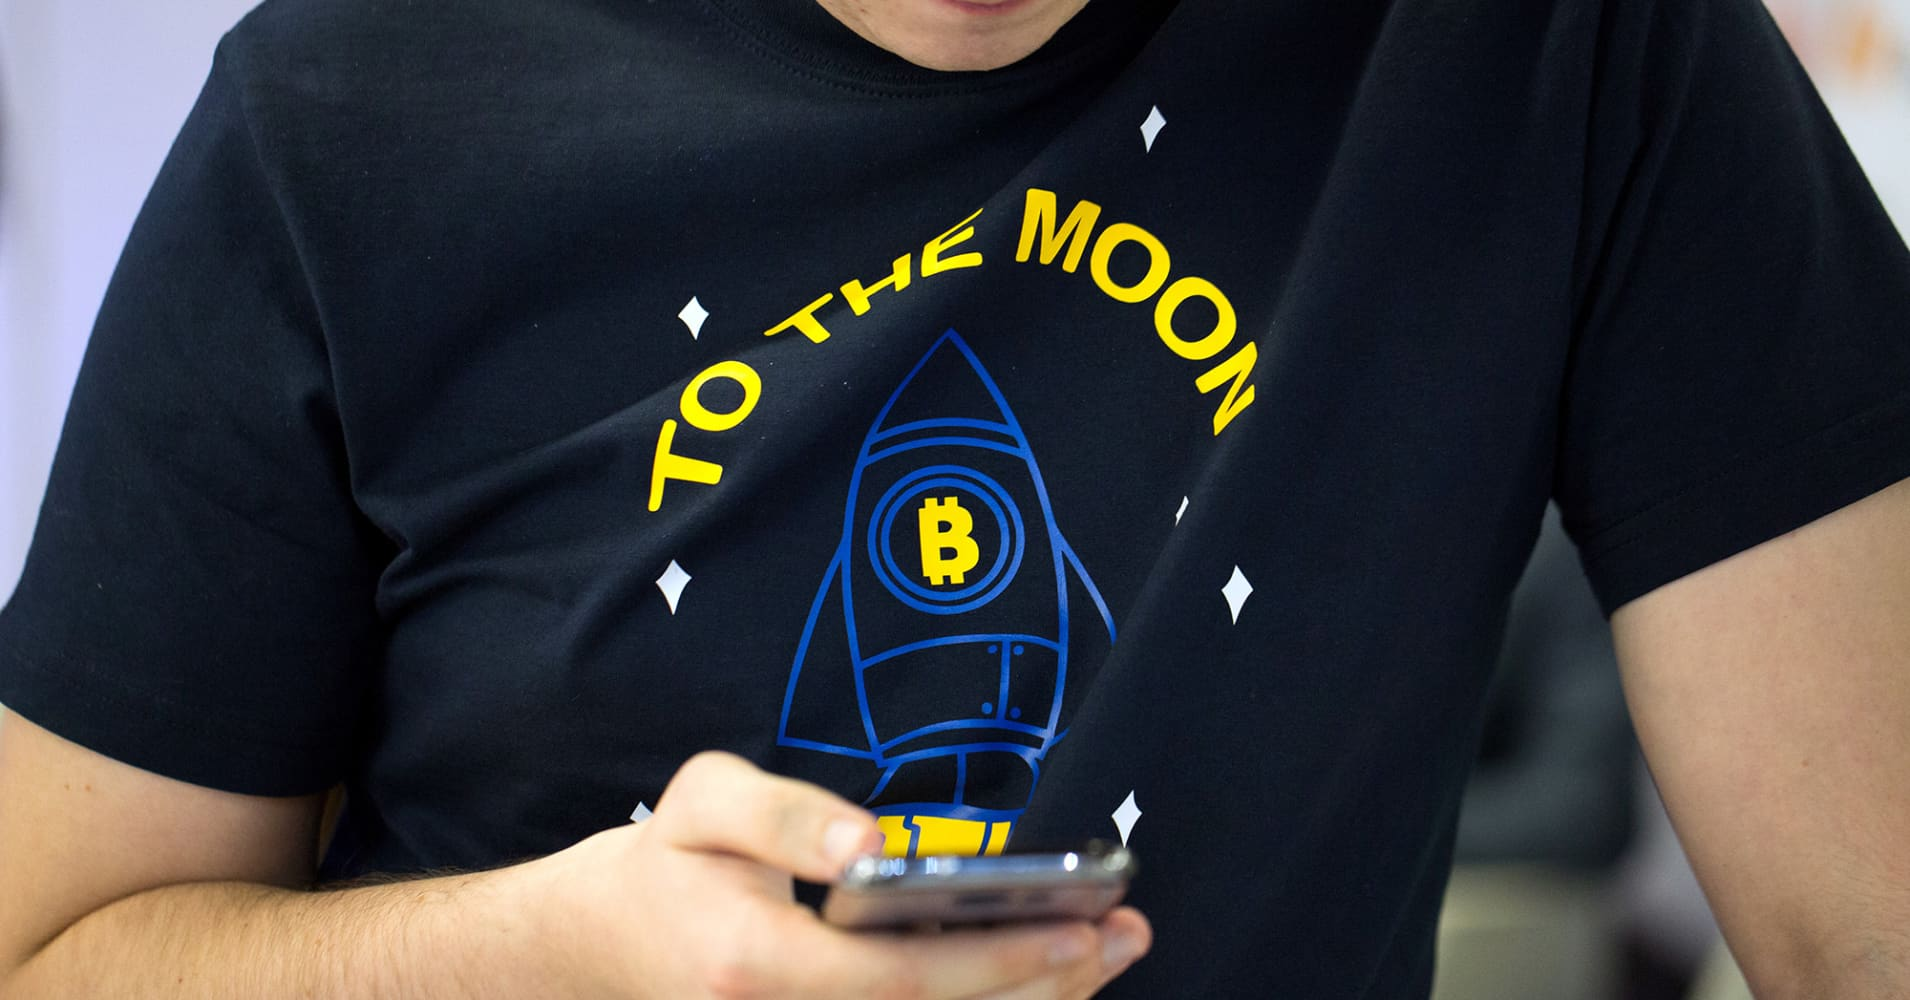 An attendee wearing a t-shirt decorated with a bitcoin rocket illustration and the words 'To the Moon' checks his smartphone at the CrytoSpace conference in Moscow, Russia, on Friday, Dec. 8, 2017.